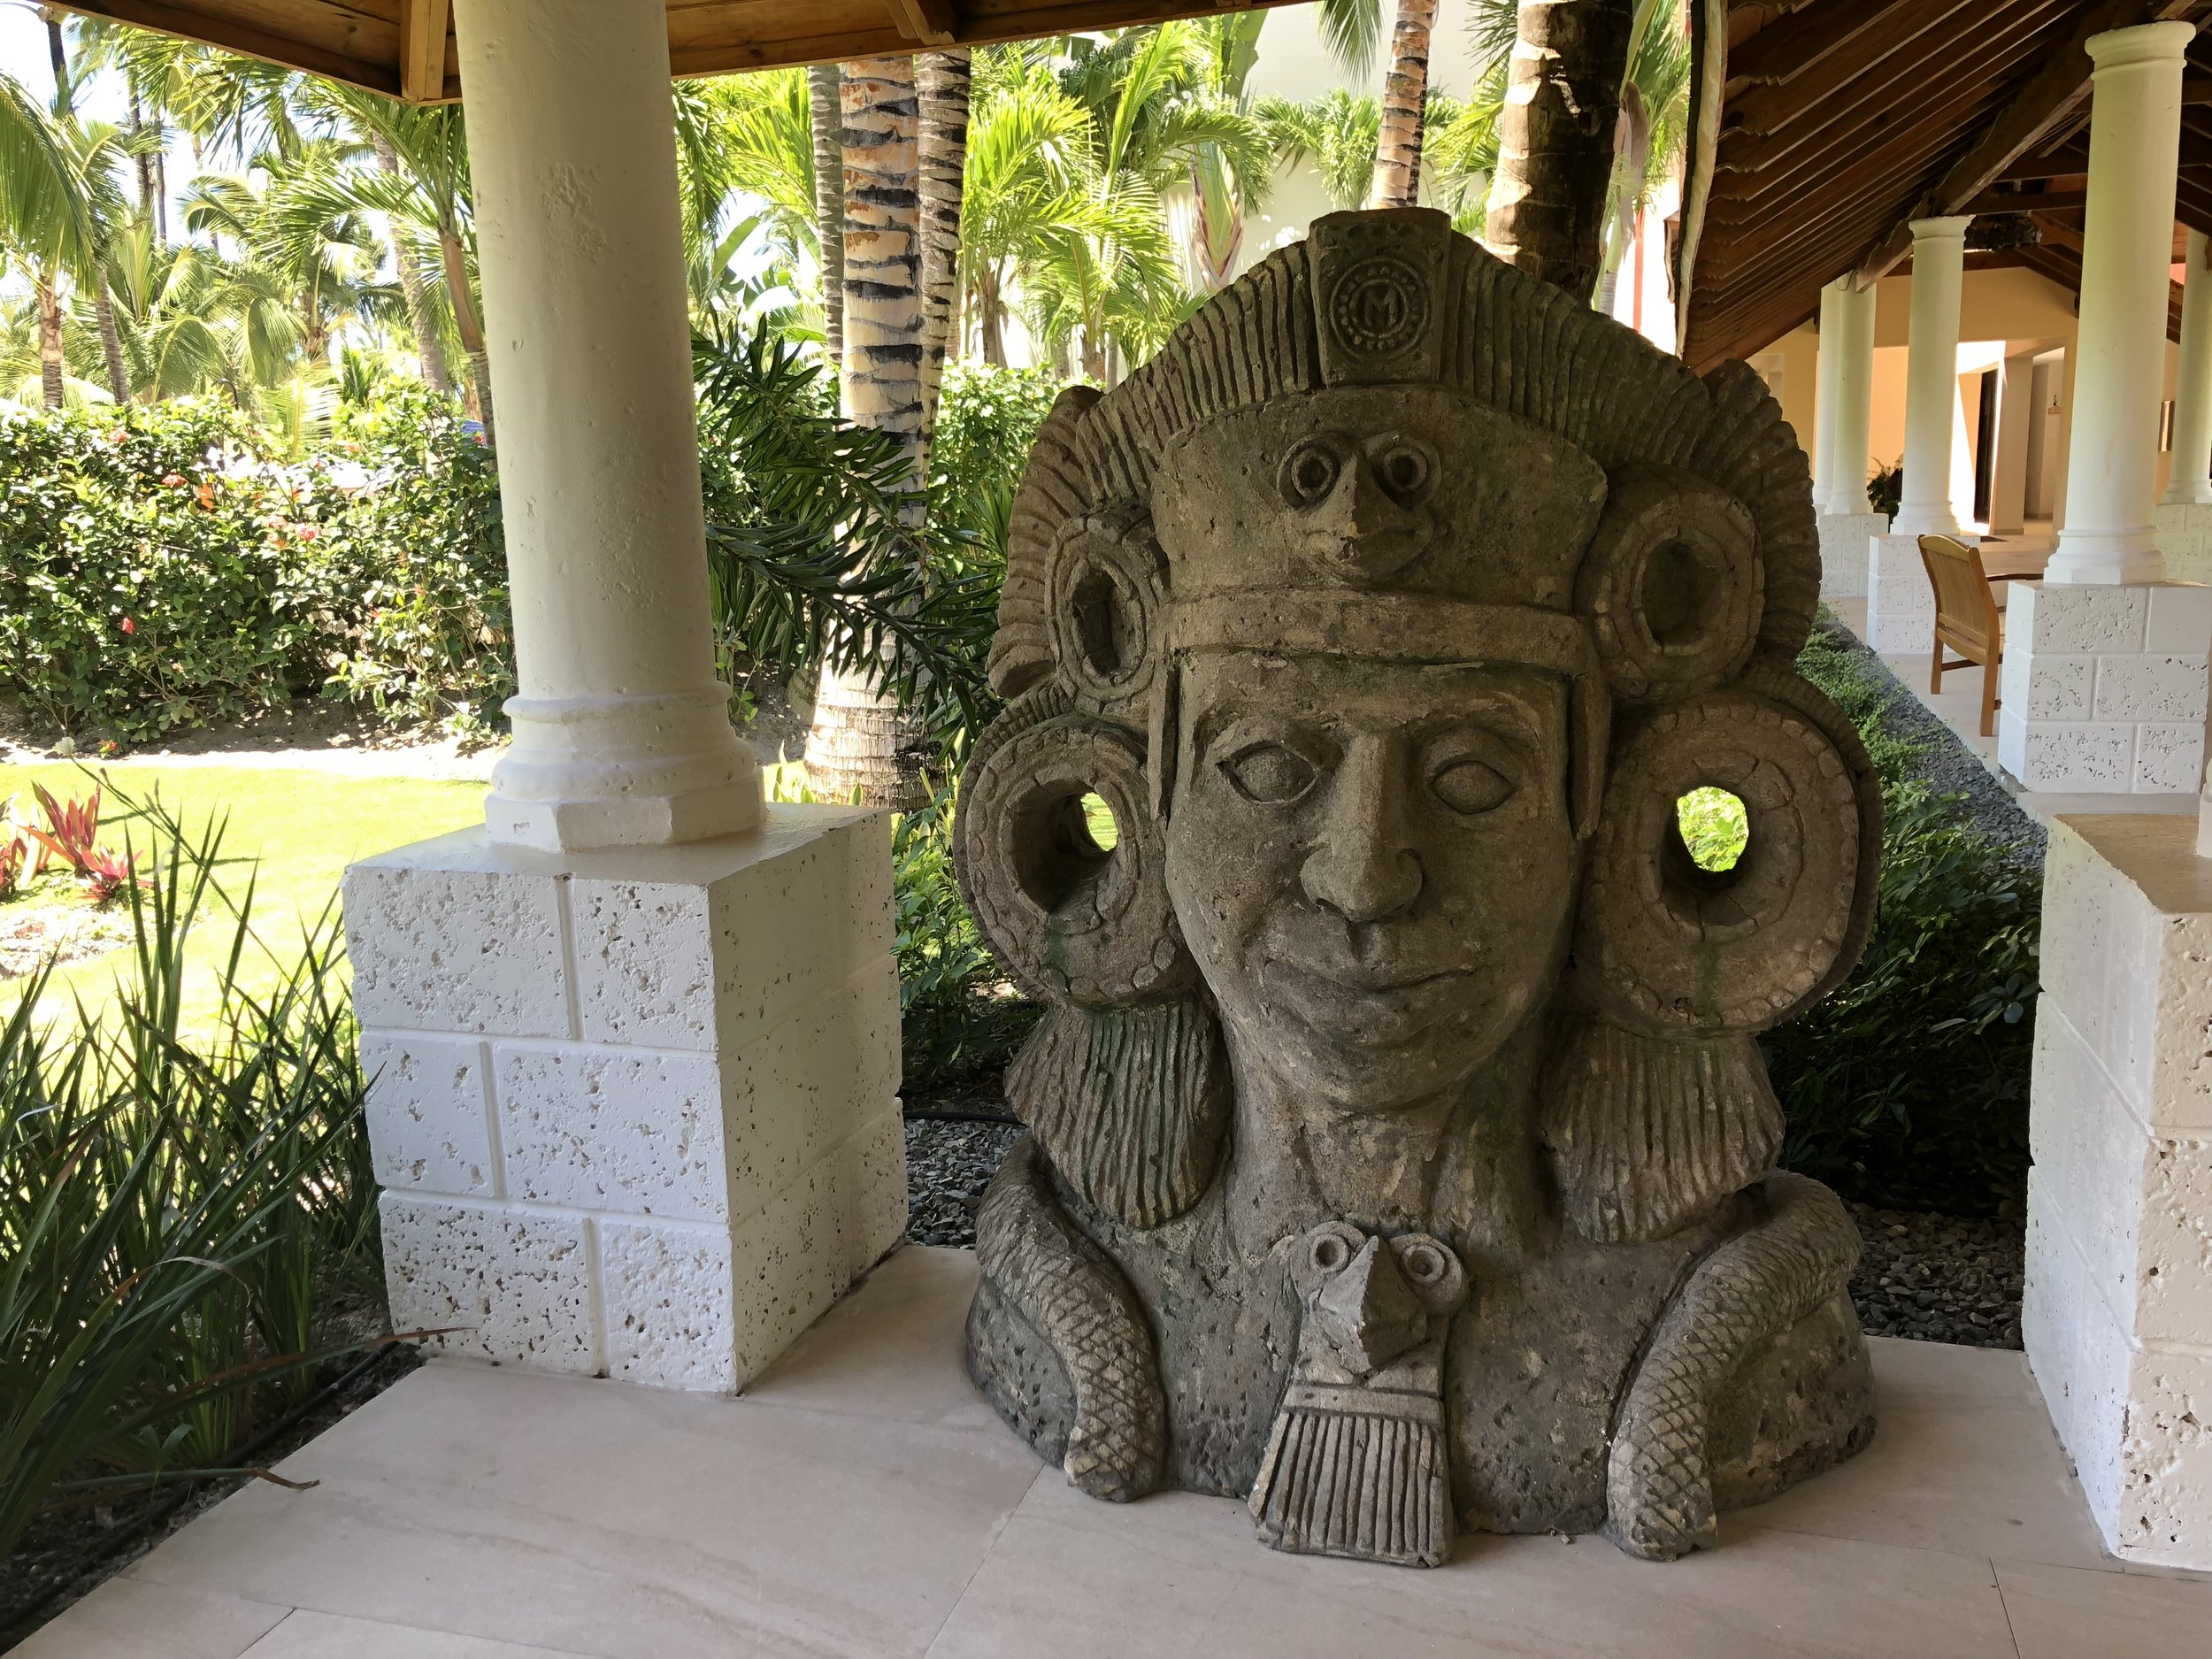 Lots of colonial statues around the resort.